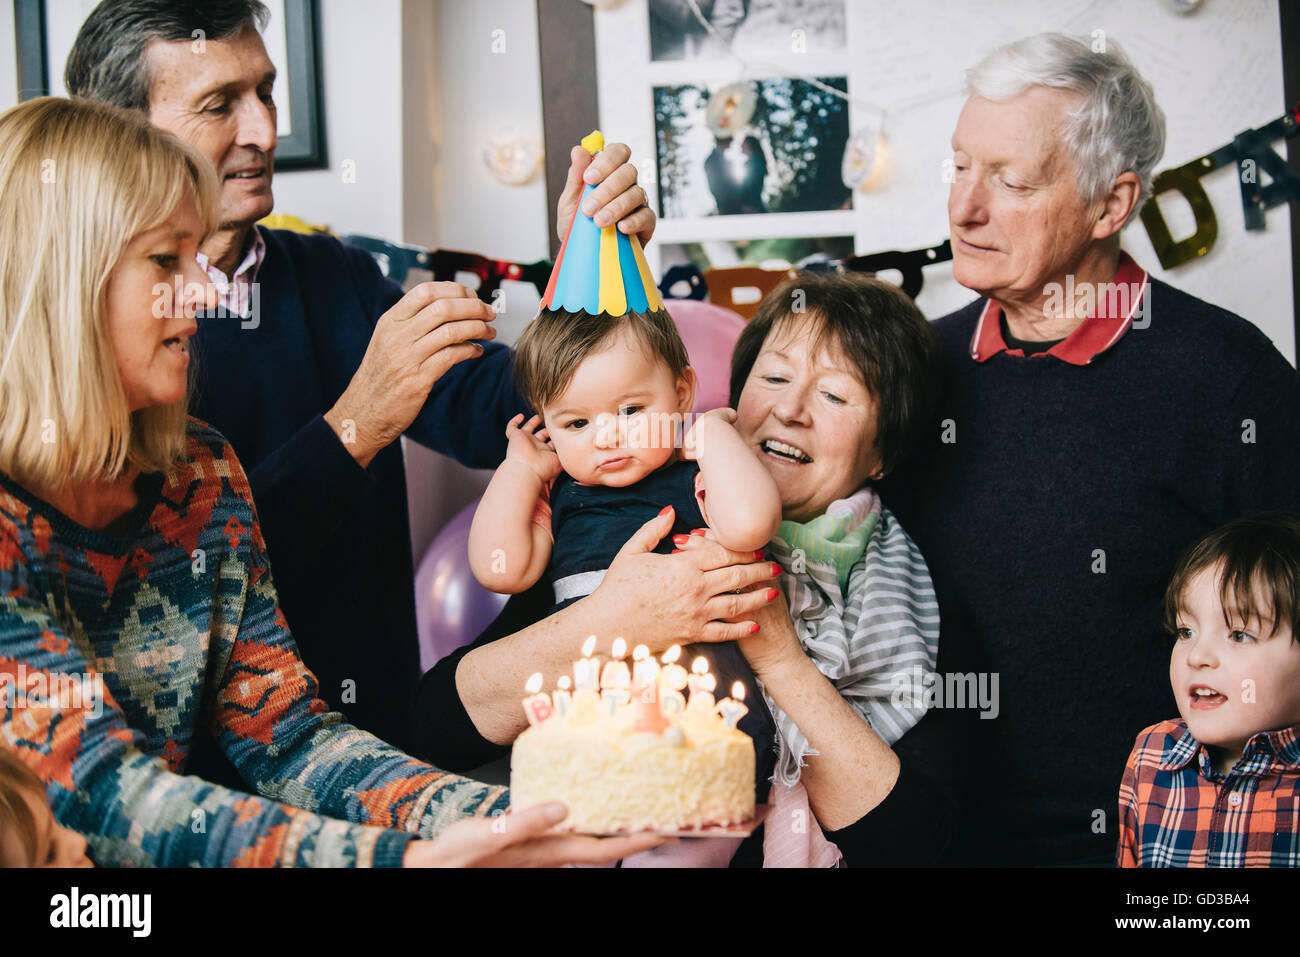 A family gathered to celebrate a one year old girl's birthday party. A cake with lots of candles. Stock Photo